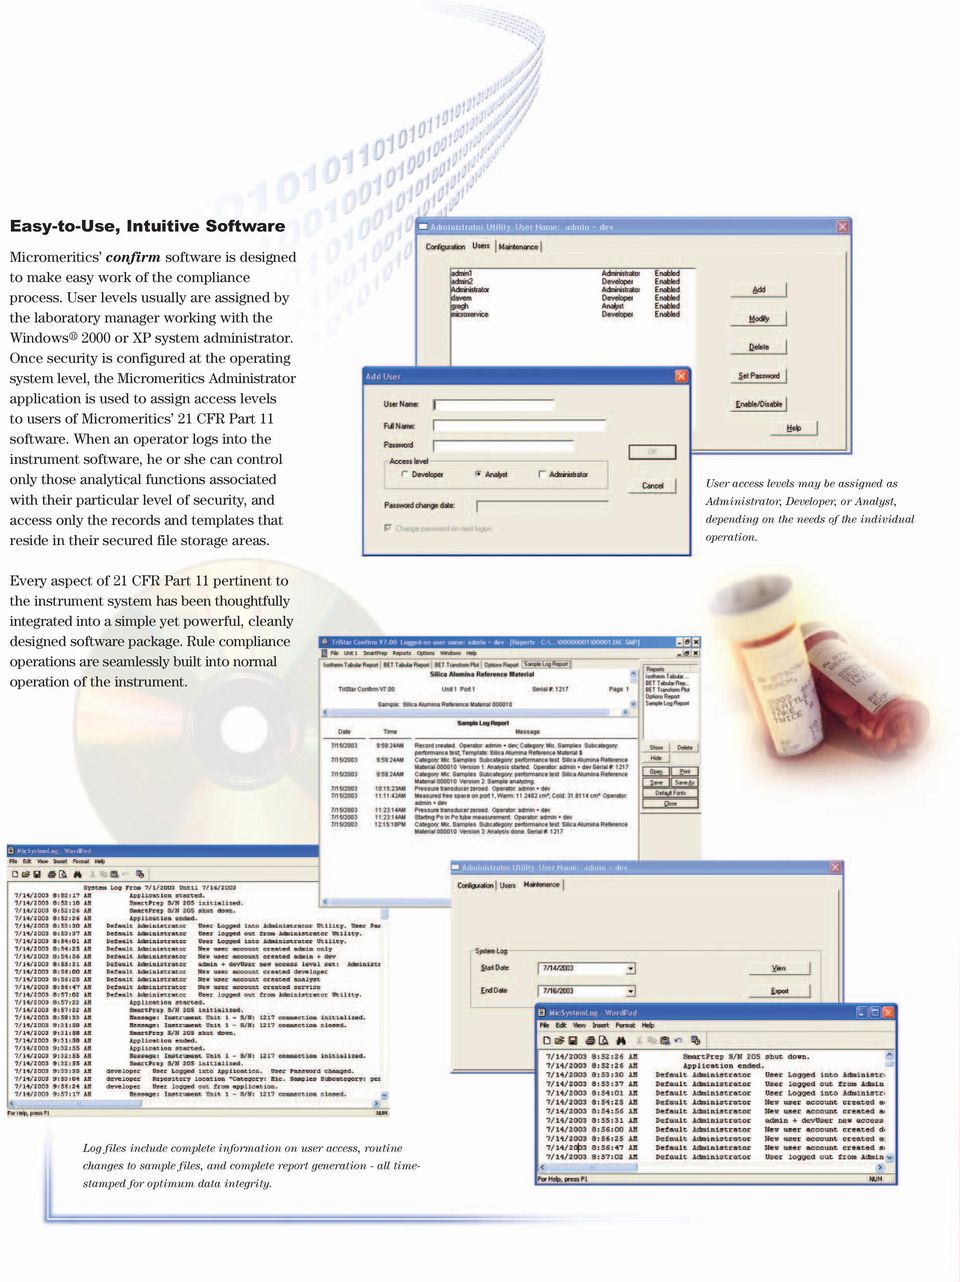 Once security is configured at the operating system level, the Micromeritics Administrator application is used to assign access levels to users of Micromeritics 21 CFR Part 11 software.